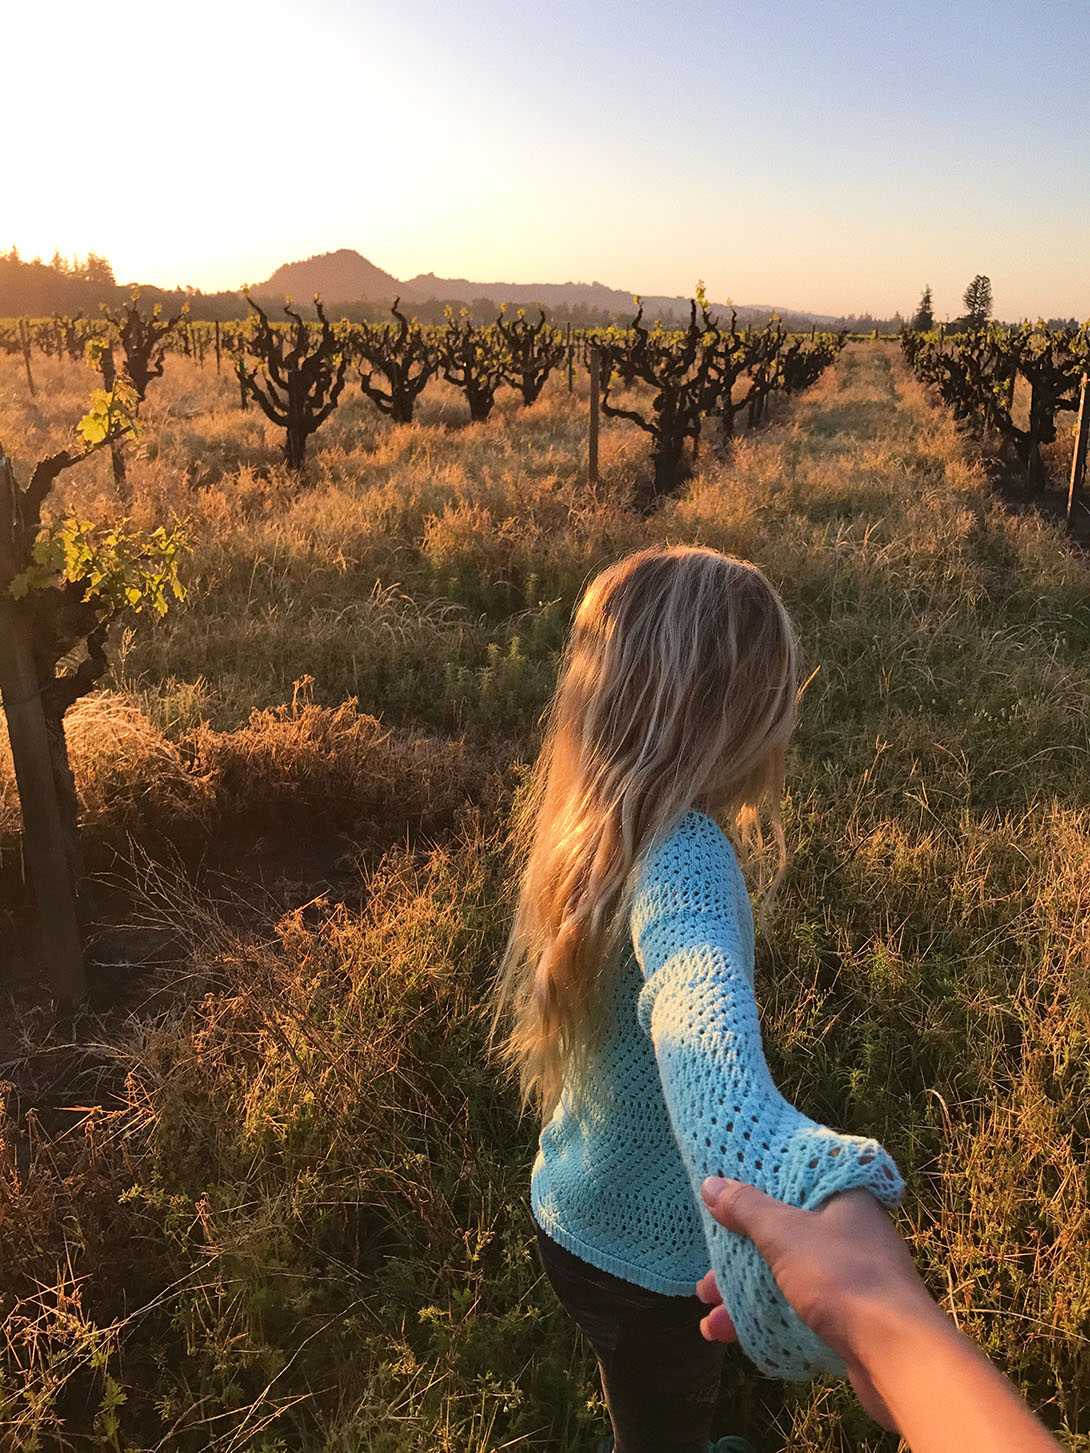 Visiting Sonoma Wine Country with the Family